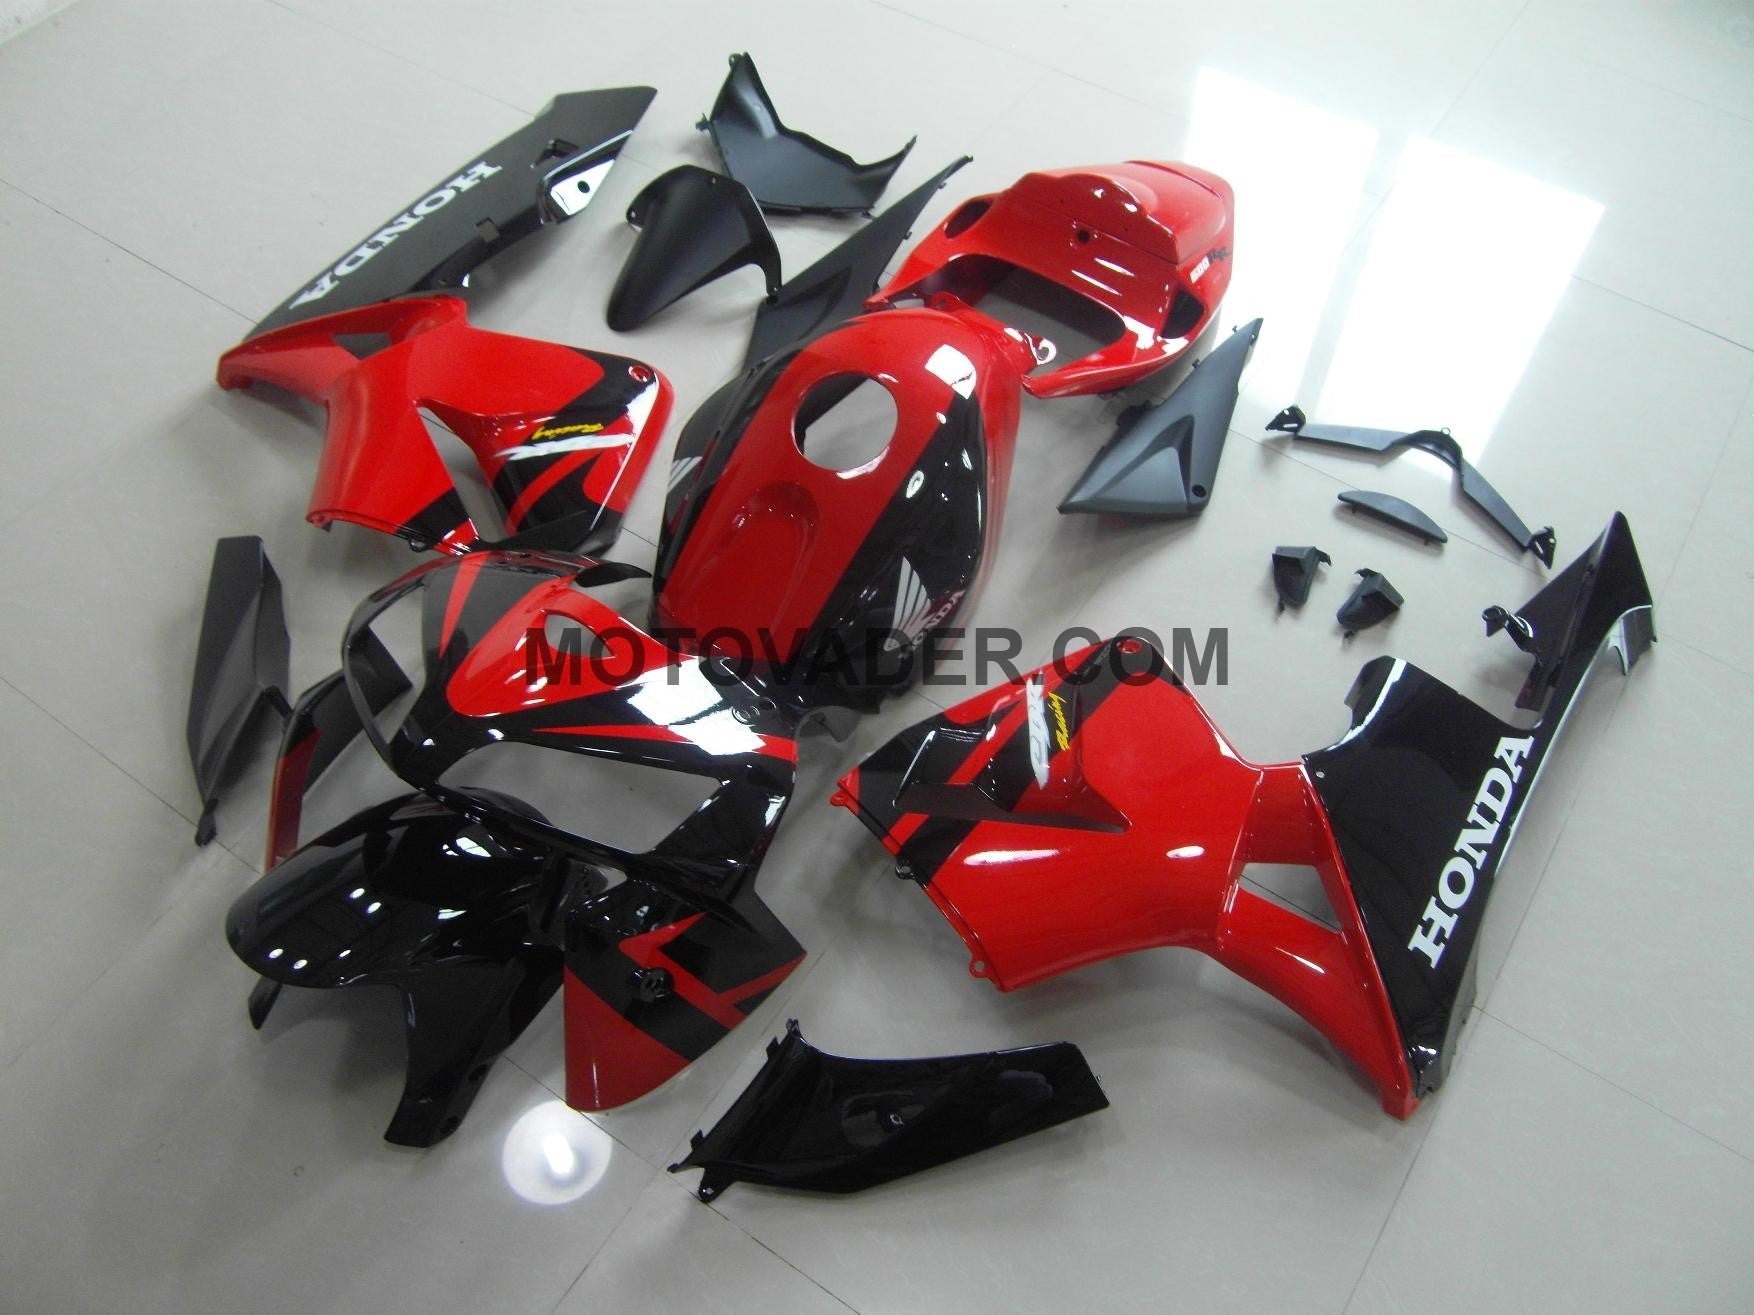 Honda CBR 600RR 2005-2006 Red & Black  Fairing